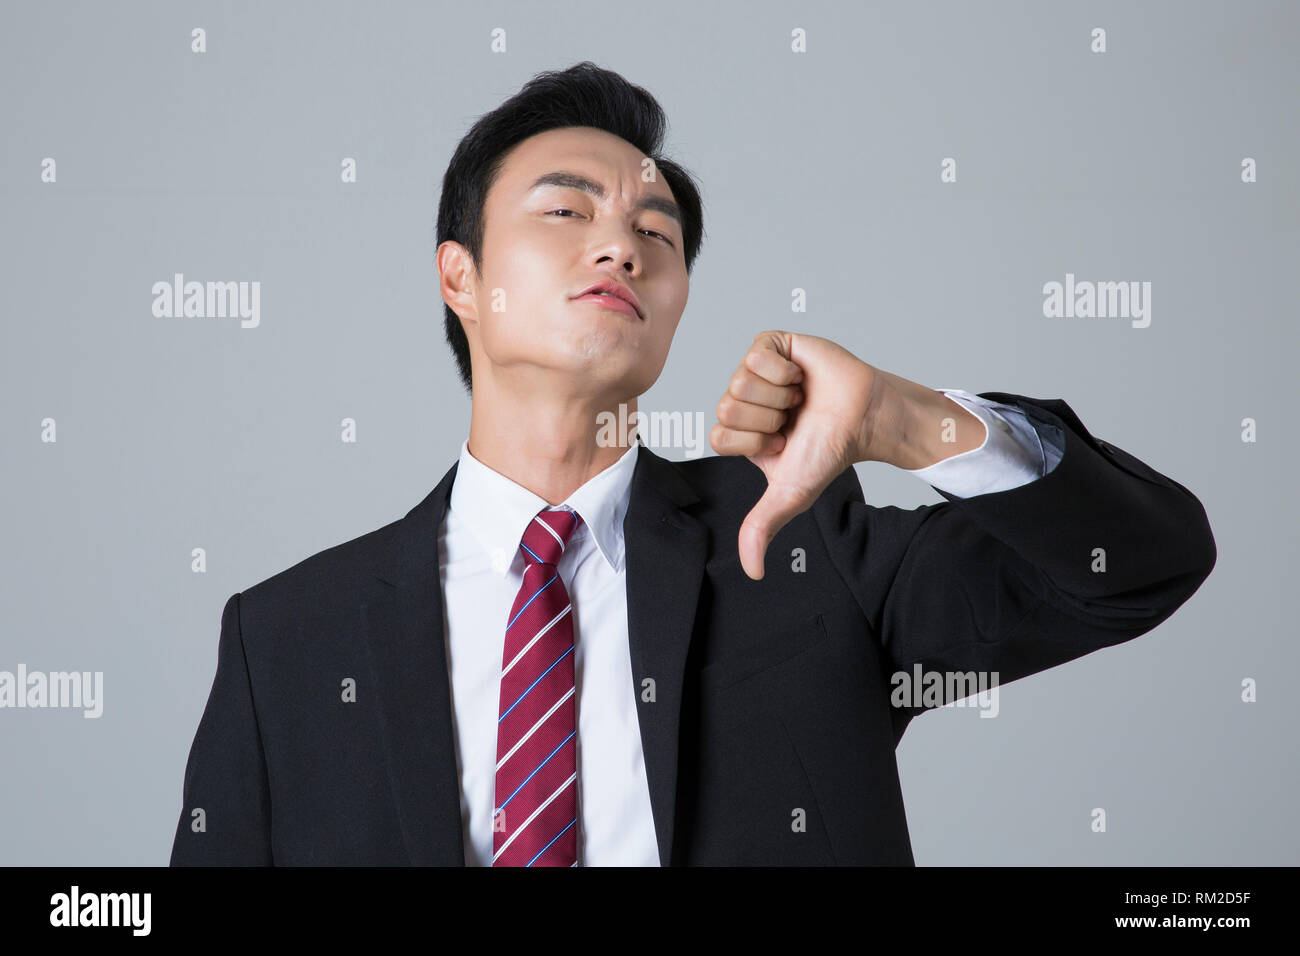 Young businessman concept photo. 108 - Stock Image